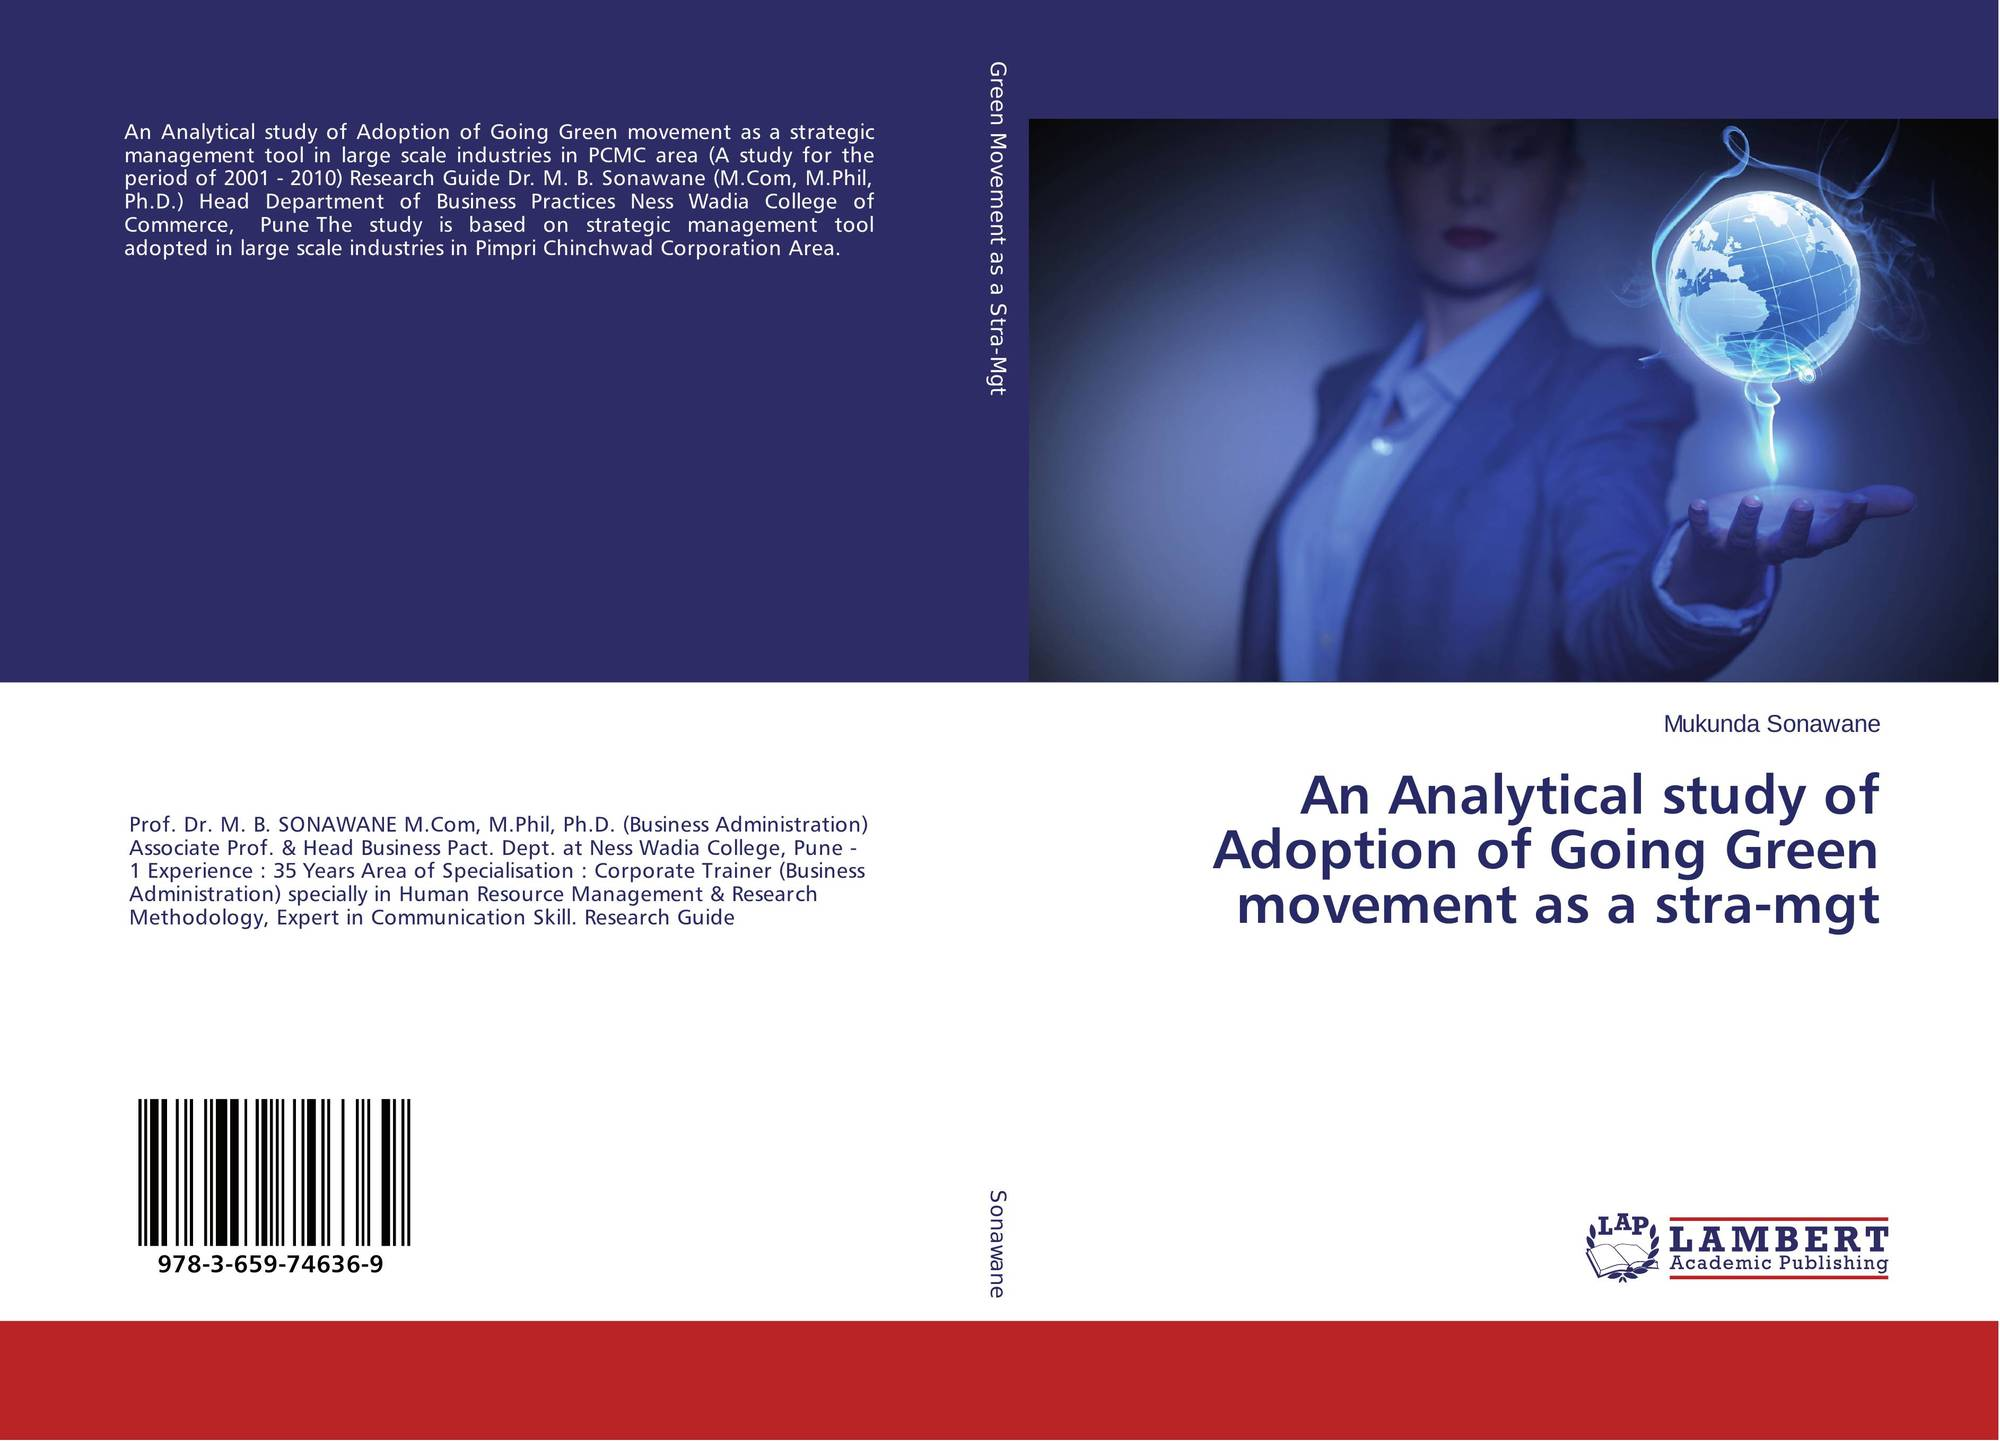 an analysis of bulk movement Laban movement analysis (lma) is a method and language for describing, visualizing, interpreting and documenting all varieties of human it is one type of laban movement study, originating from the work of rudolf laban and developed and extended by lisa ullmann, irmgard bartenieff, warren lamb.